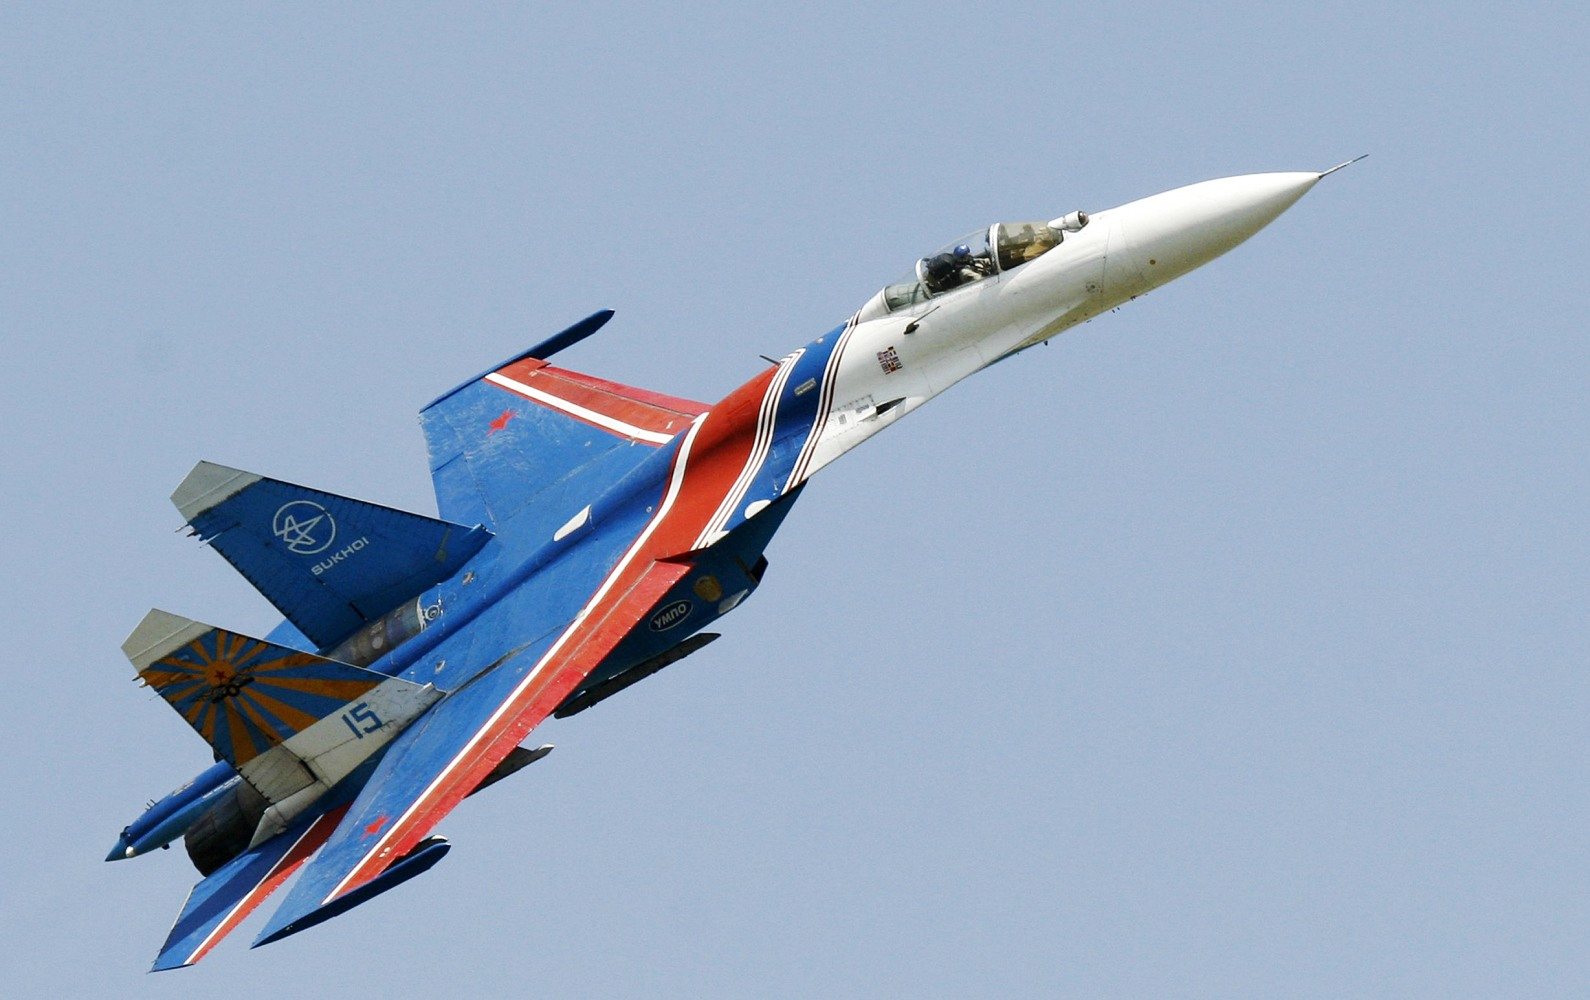 Russian Fighter Jet Comes Within 20 Feet of US Navy Plane